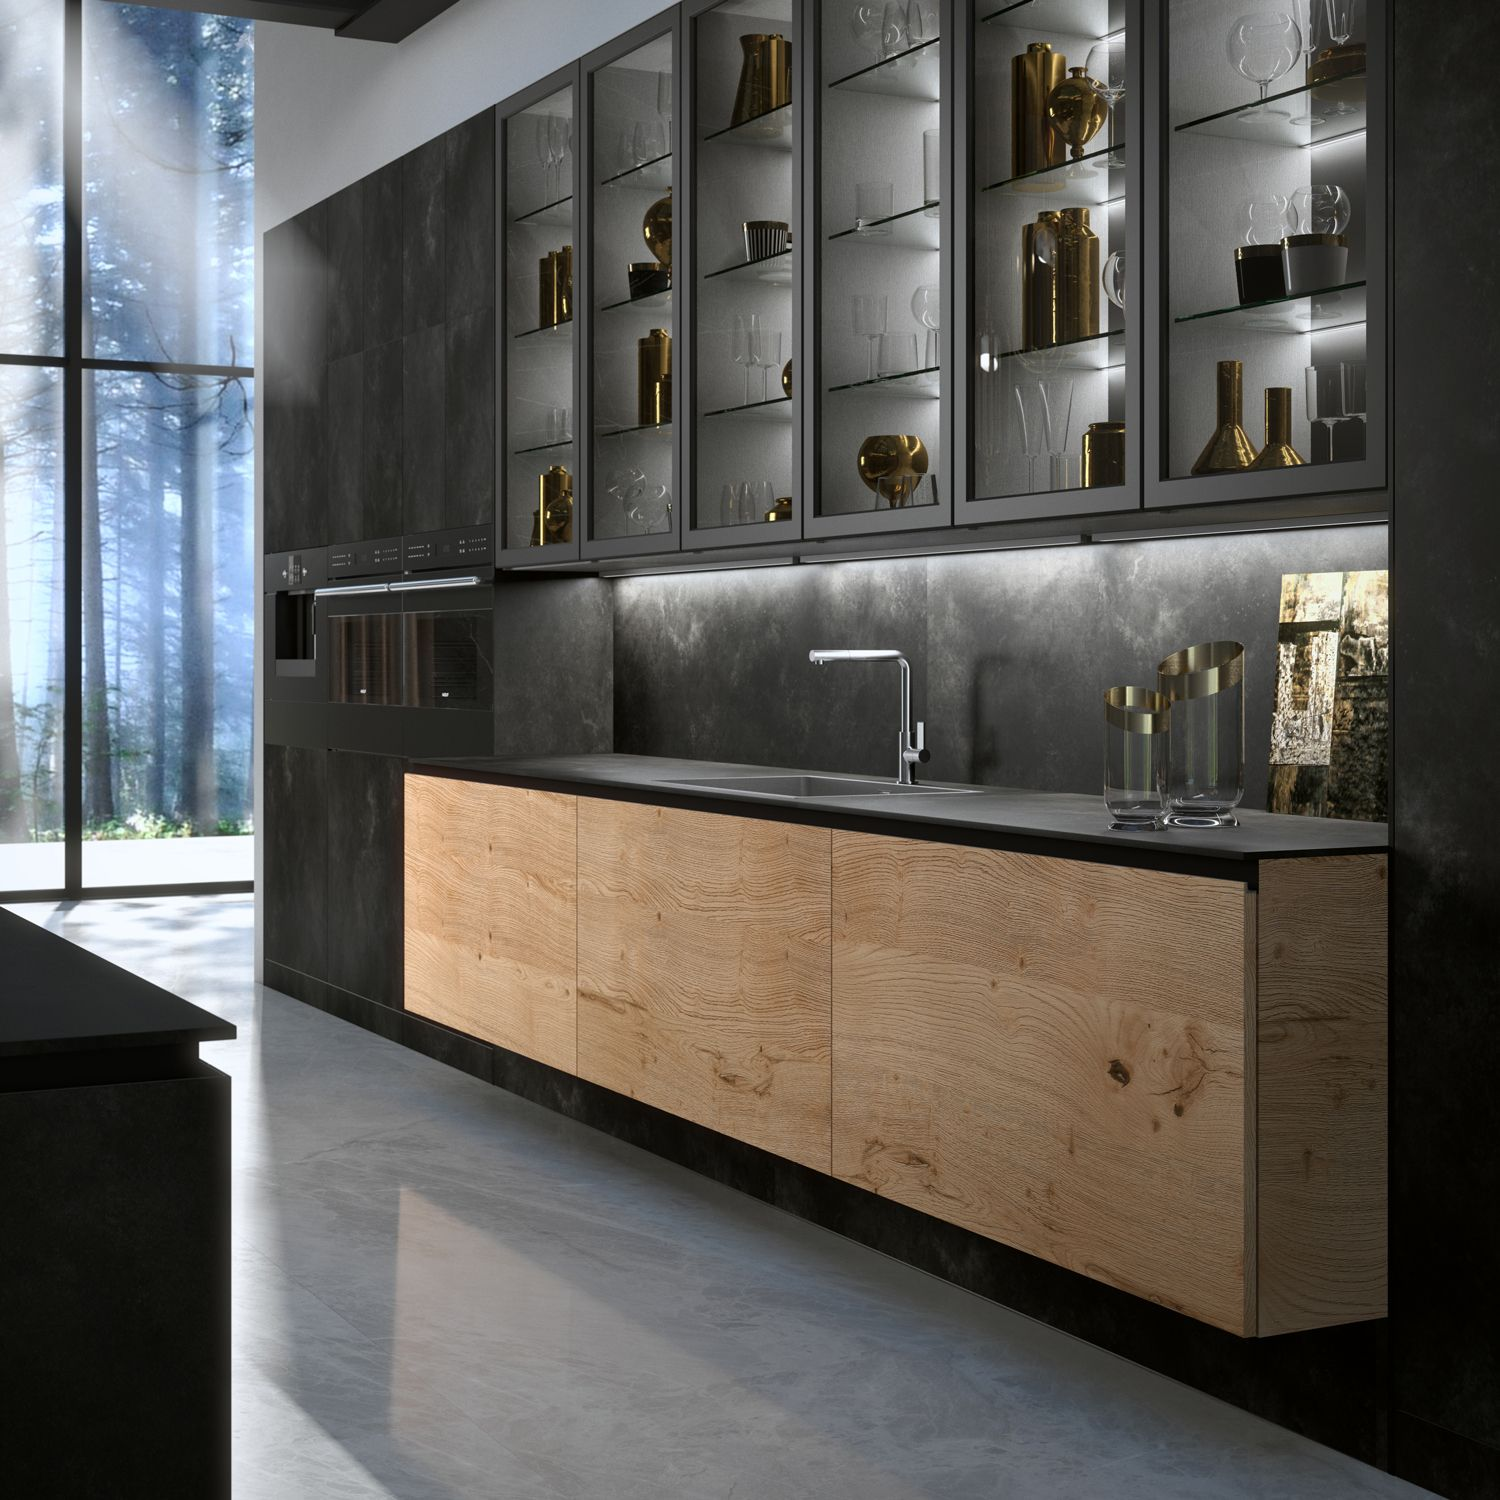 Heartwood Base Cabinets With Tall Units, Countertop And Backsplash In  Ossido Nero Ceramic. Upper